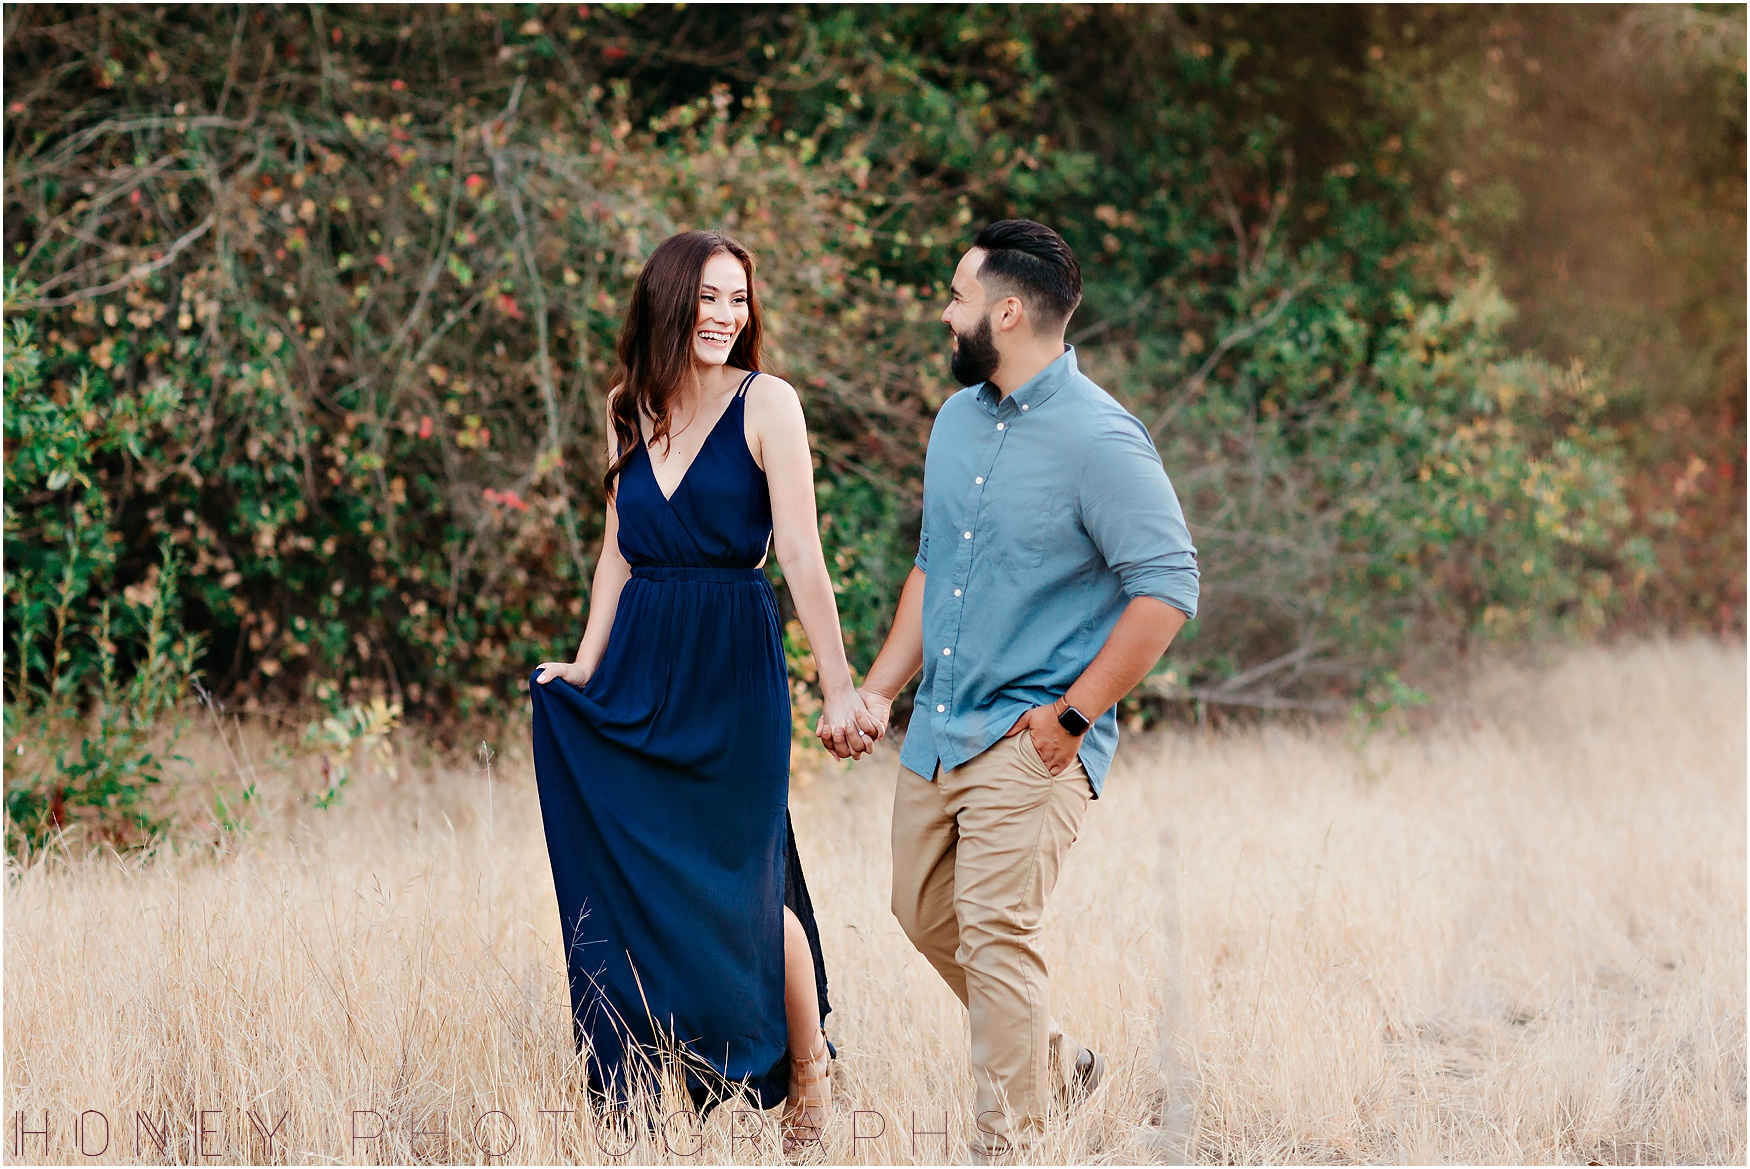 marian_bear_sunset_woods_san_diego_engagement025.jpg